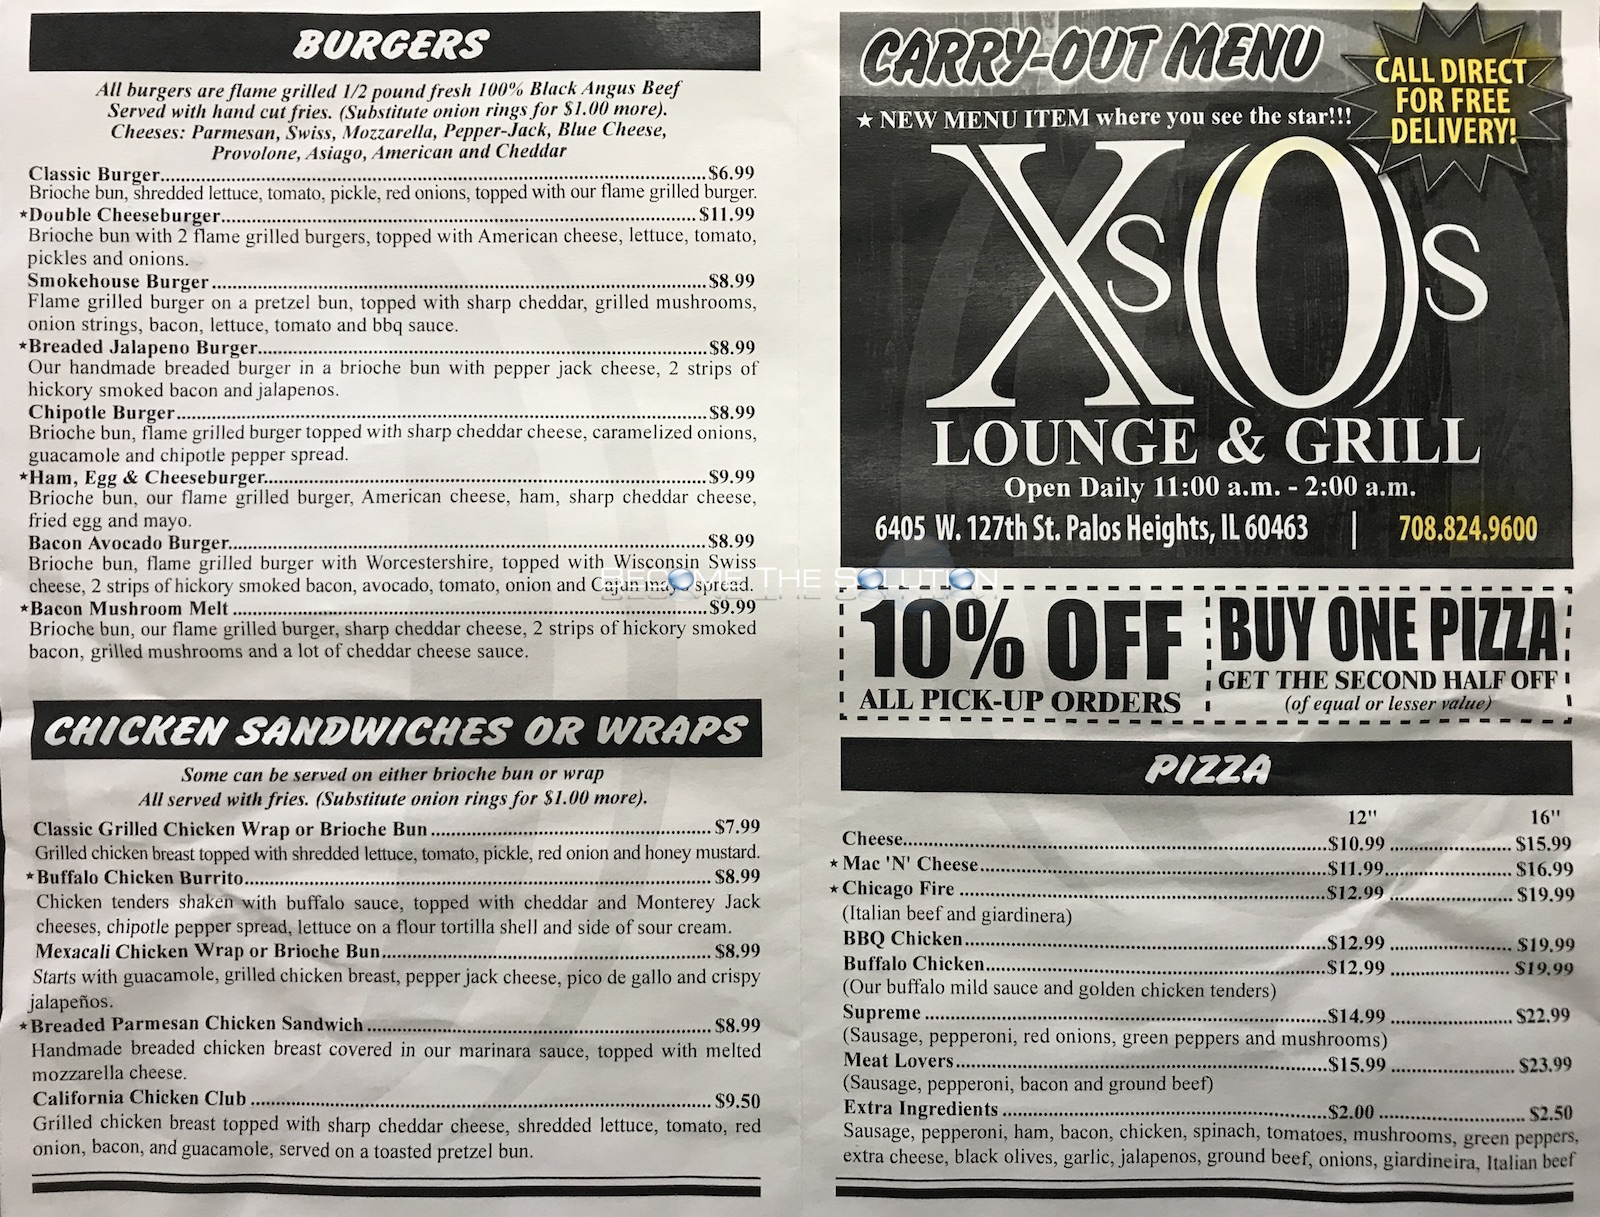 Xs and os palos heights menu 2